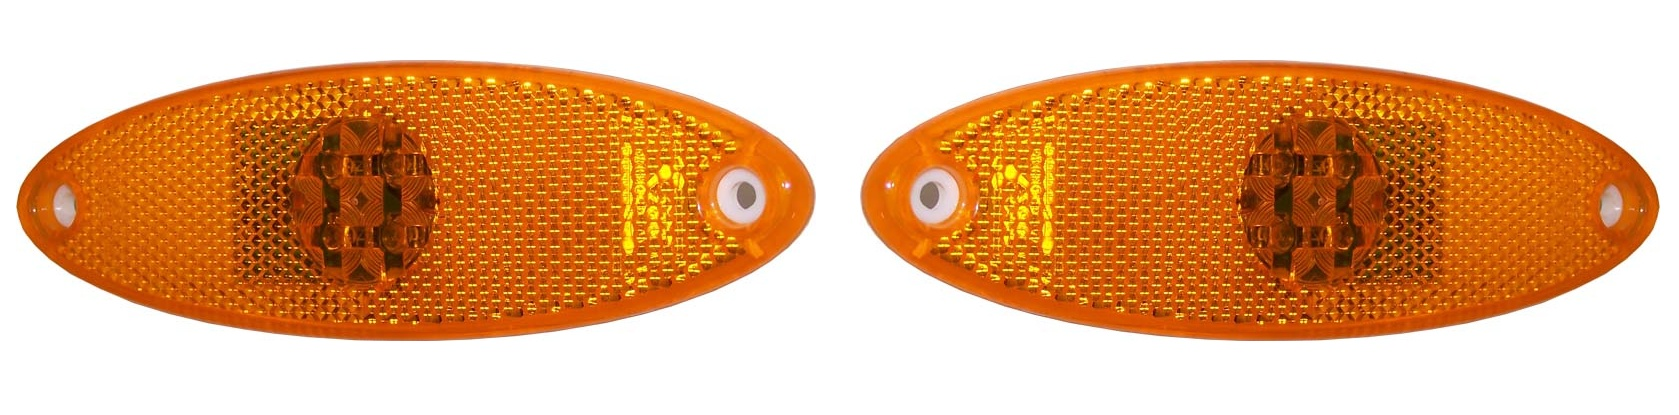 Perei M70 LED marker light